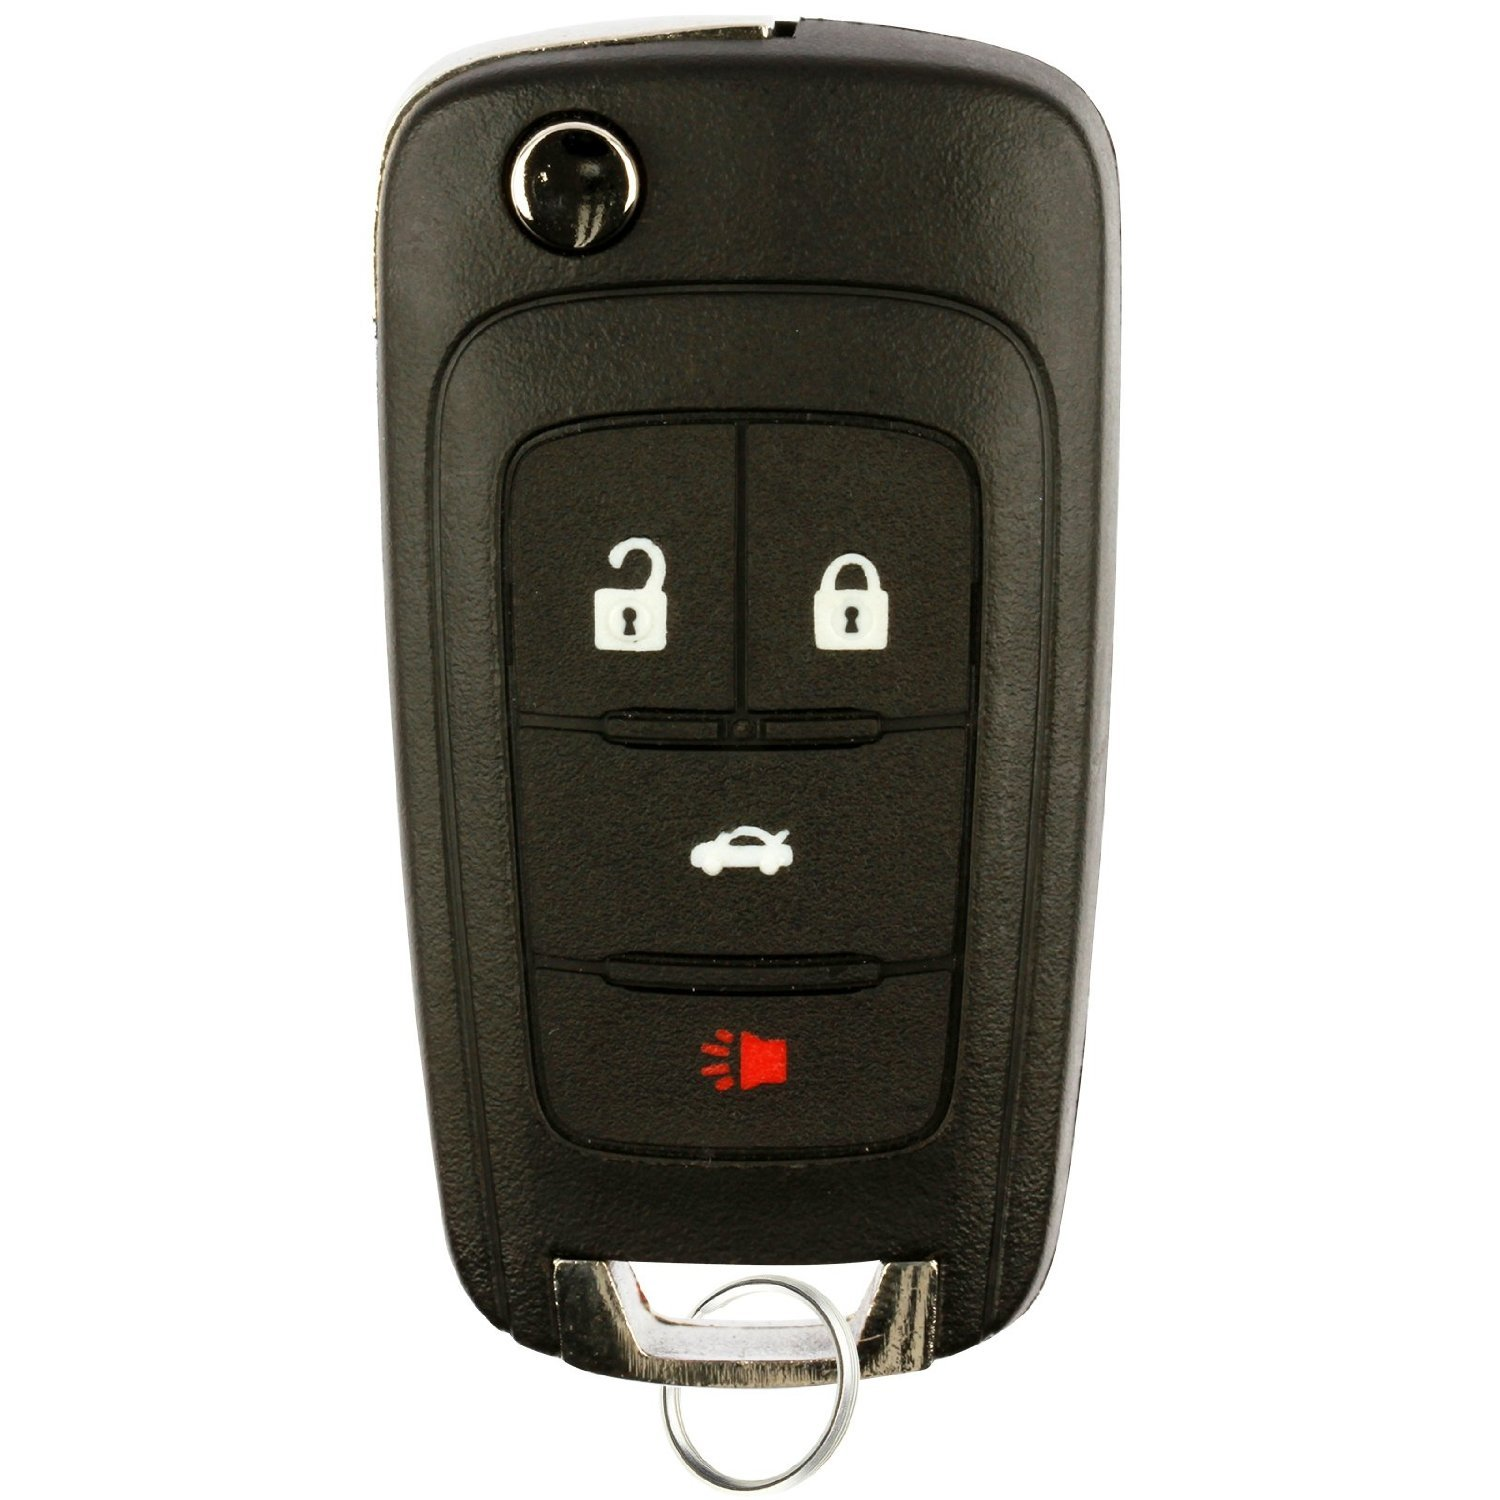 Replacement Keyless Remote Fob Key Shell Case For Buick Encore LaCrosse Regal Verano Chevrolet Camaro Cruze Equinox Malibu SS Sonic GMC Terrain OHT01060512 ASD